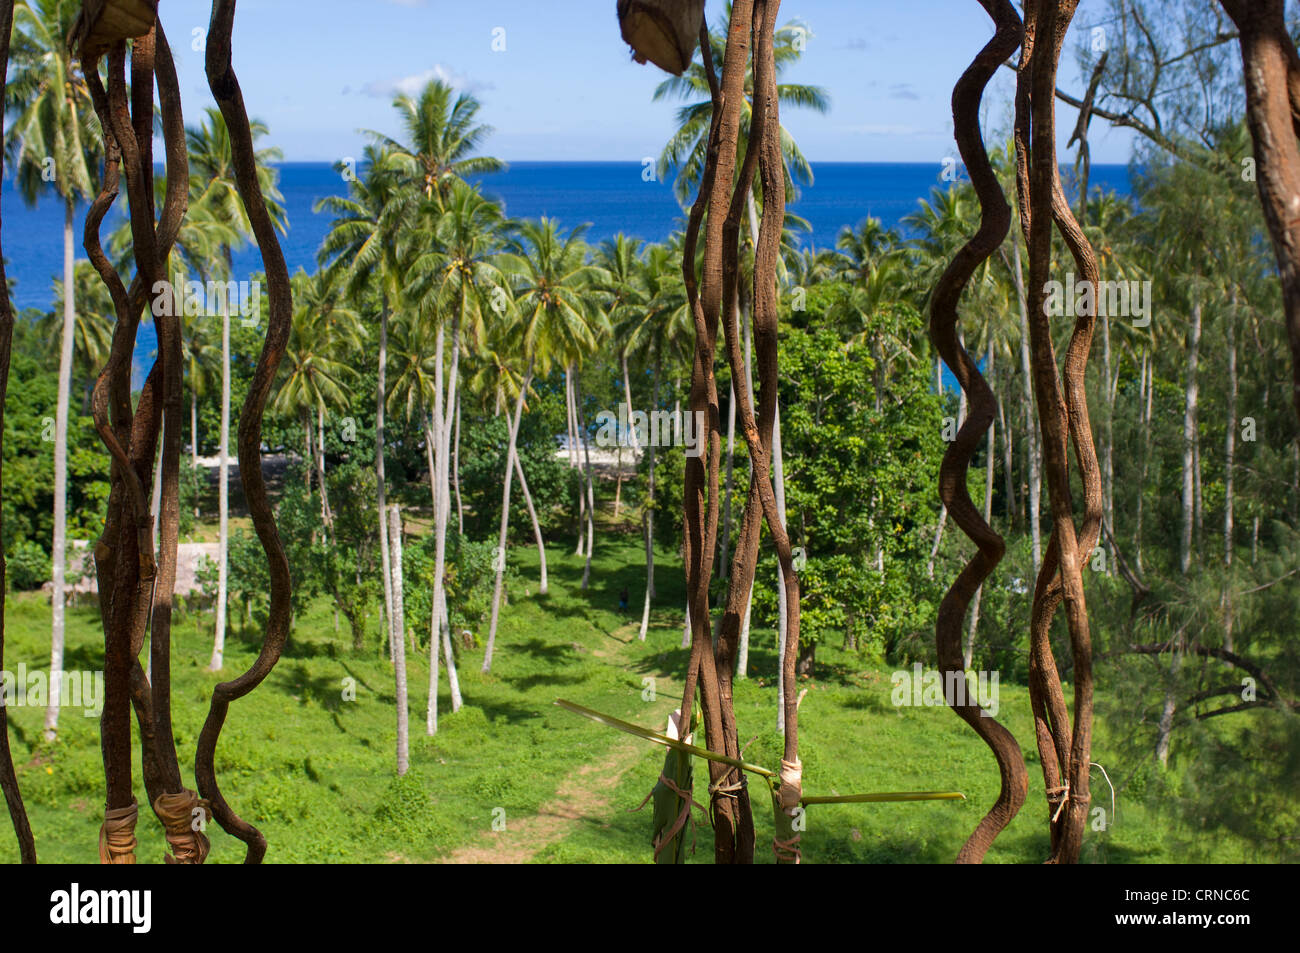 Vines hanging ready for the jumpers,  before the Nagol land-diving ceremony, Pentecost Island, Vanuatu - Stock Image